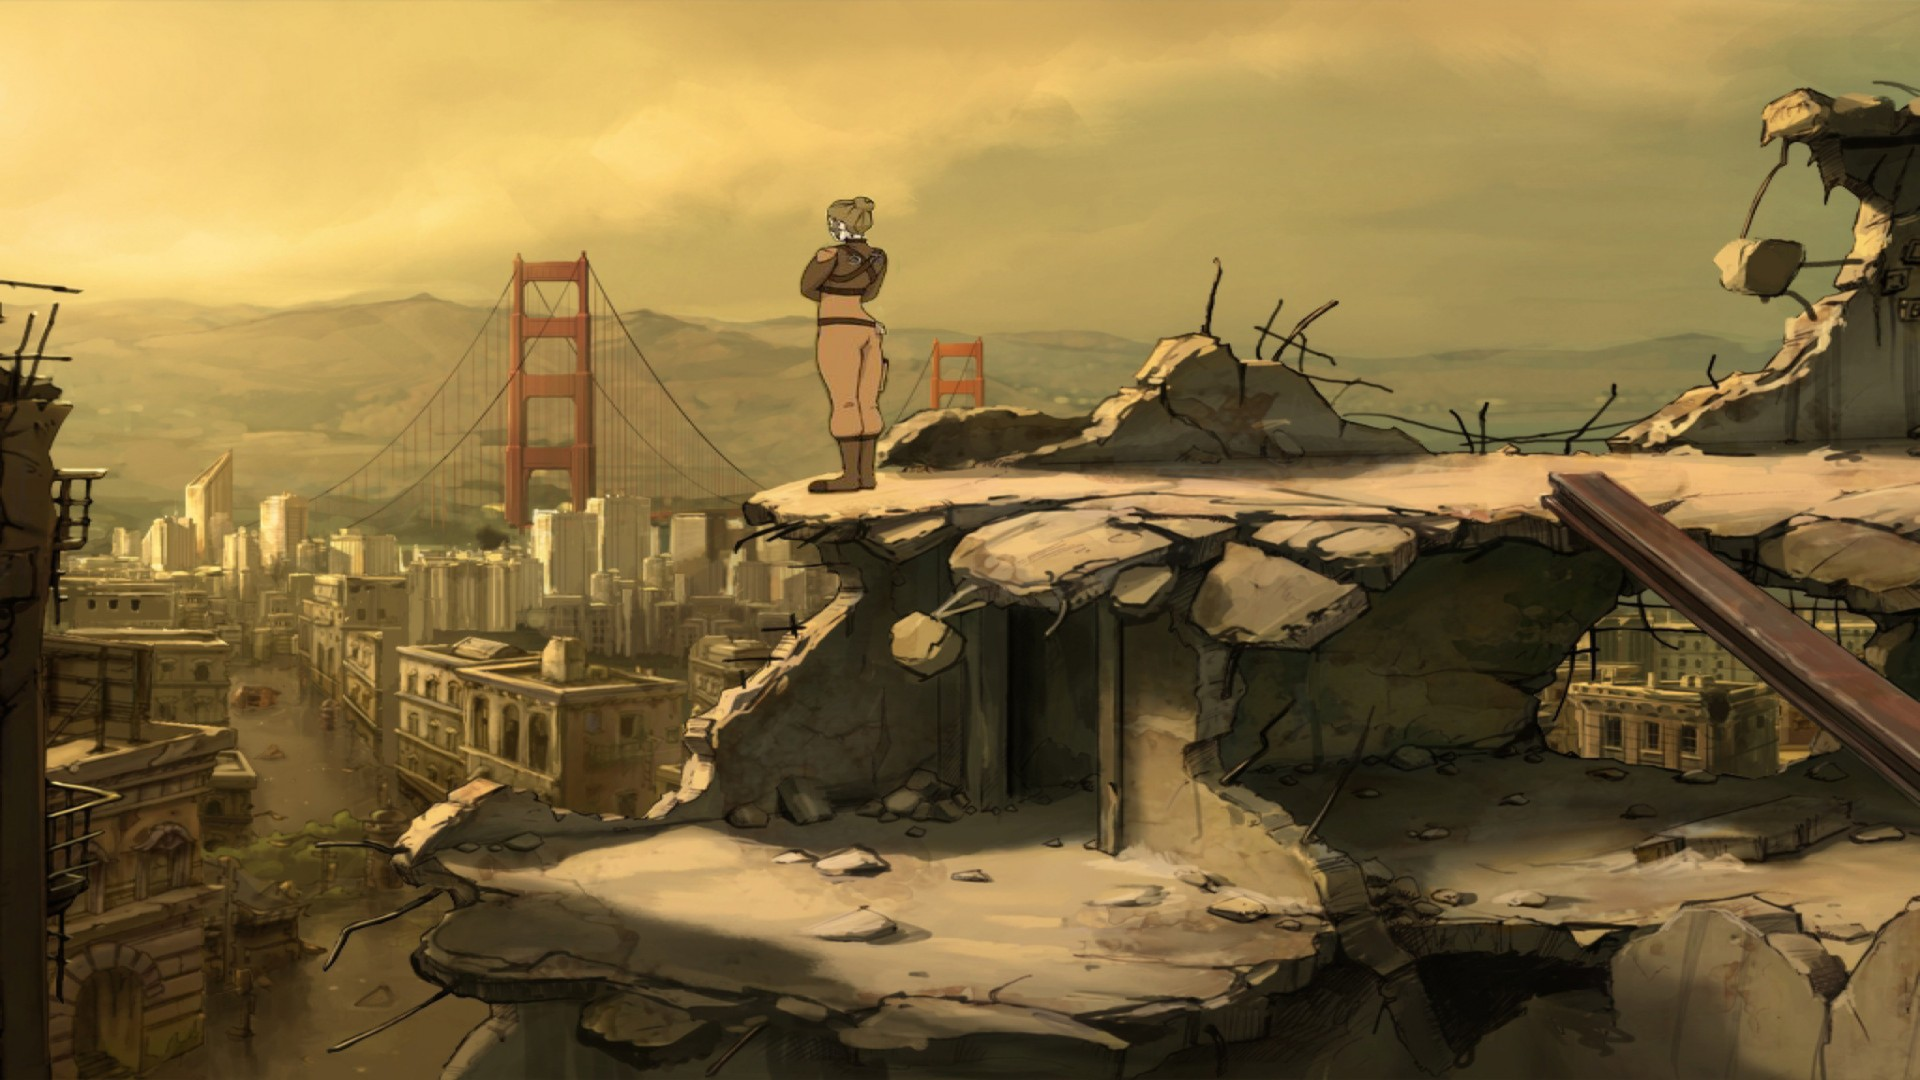 A femme appearing person in military attire stands in the foreground and looks out at a destroyed city, including the Golden Gate Bridge.